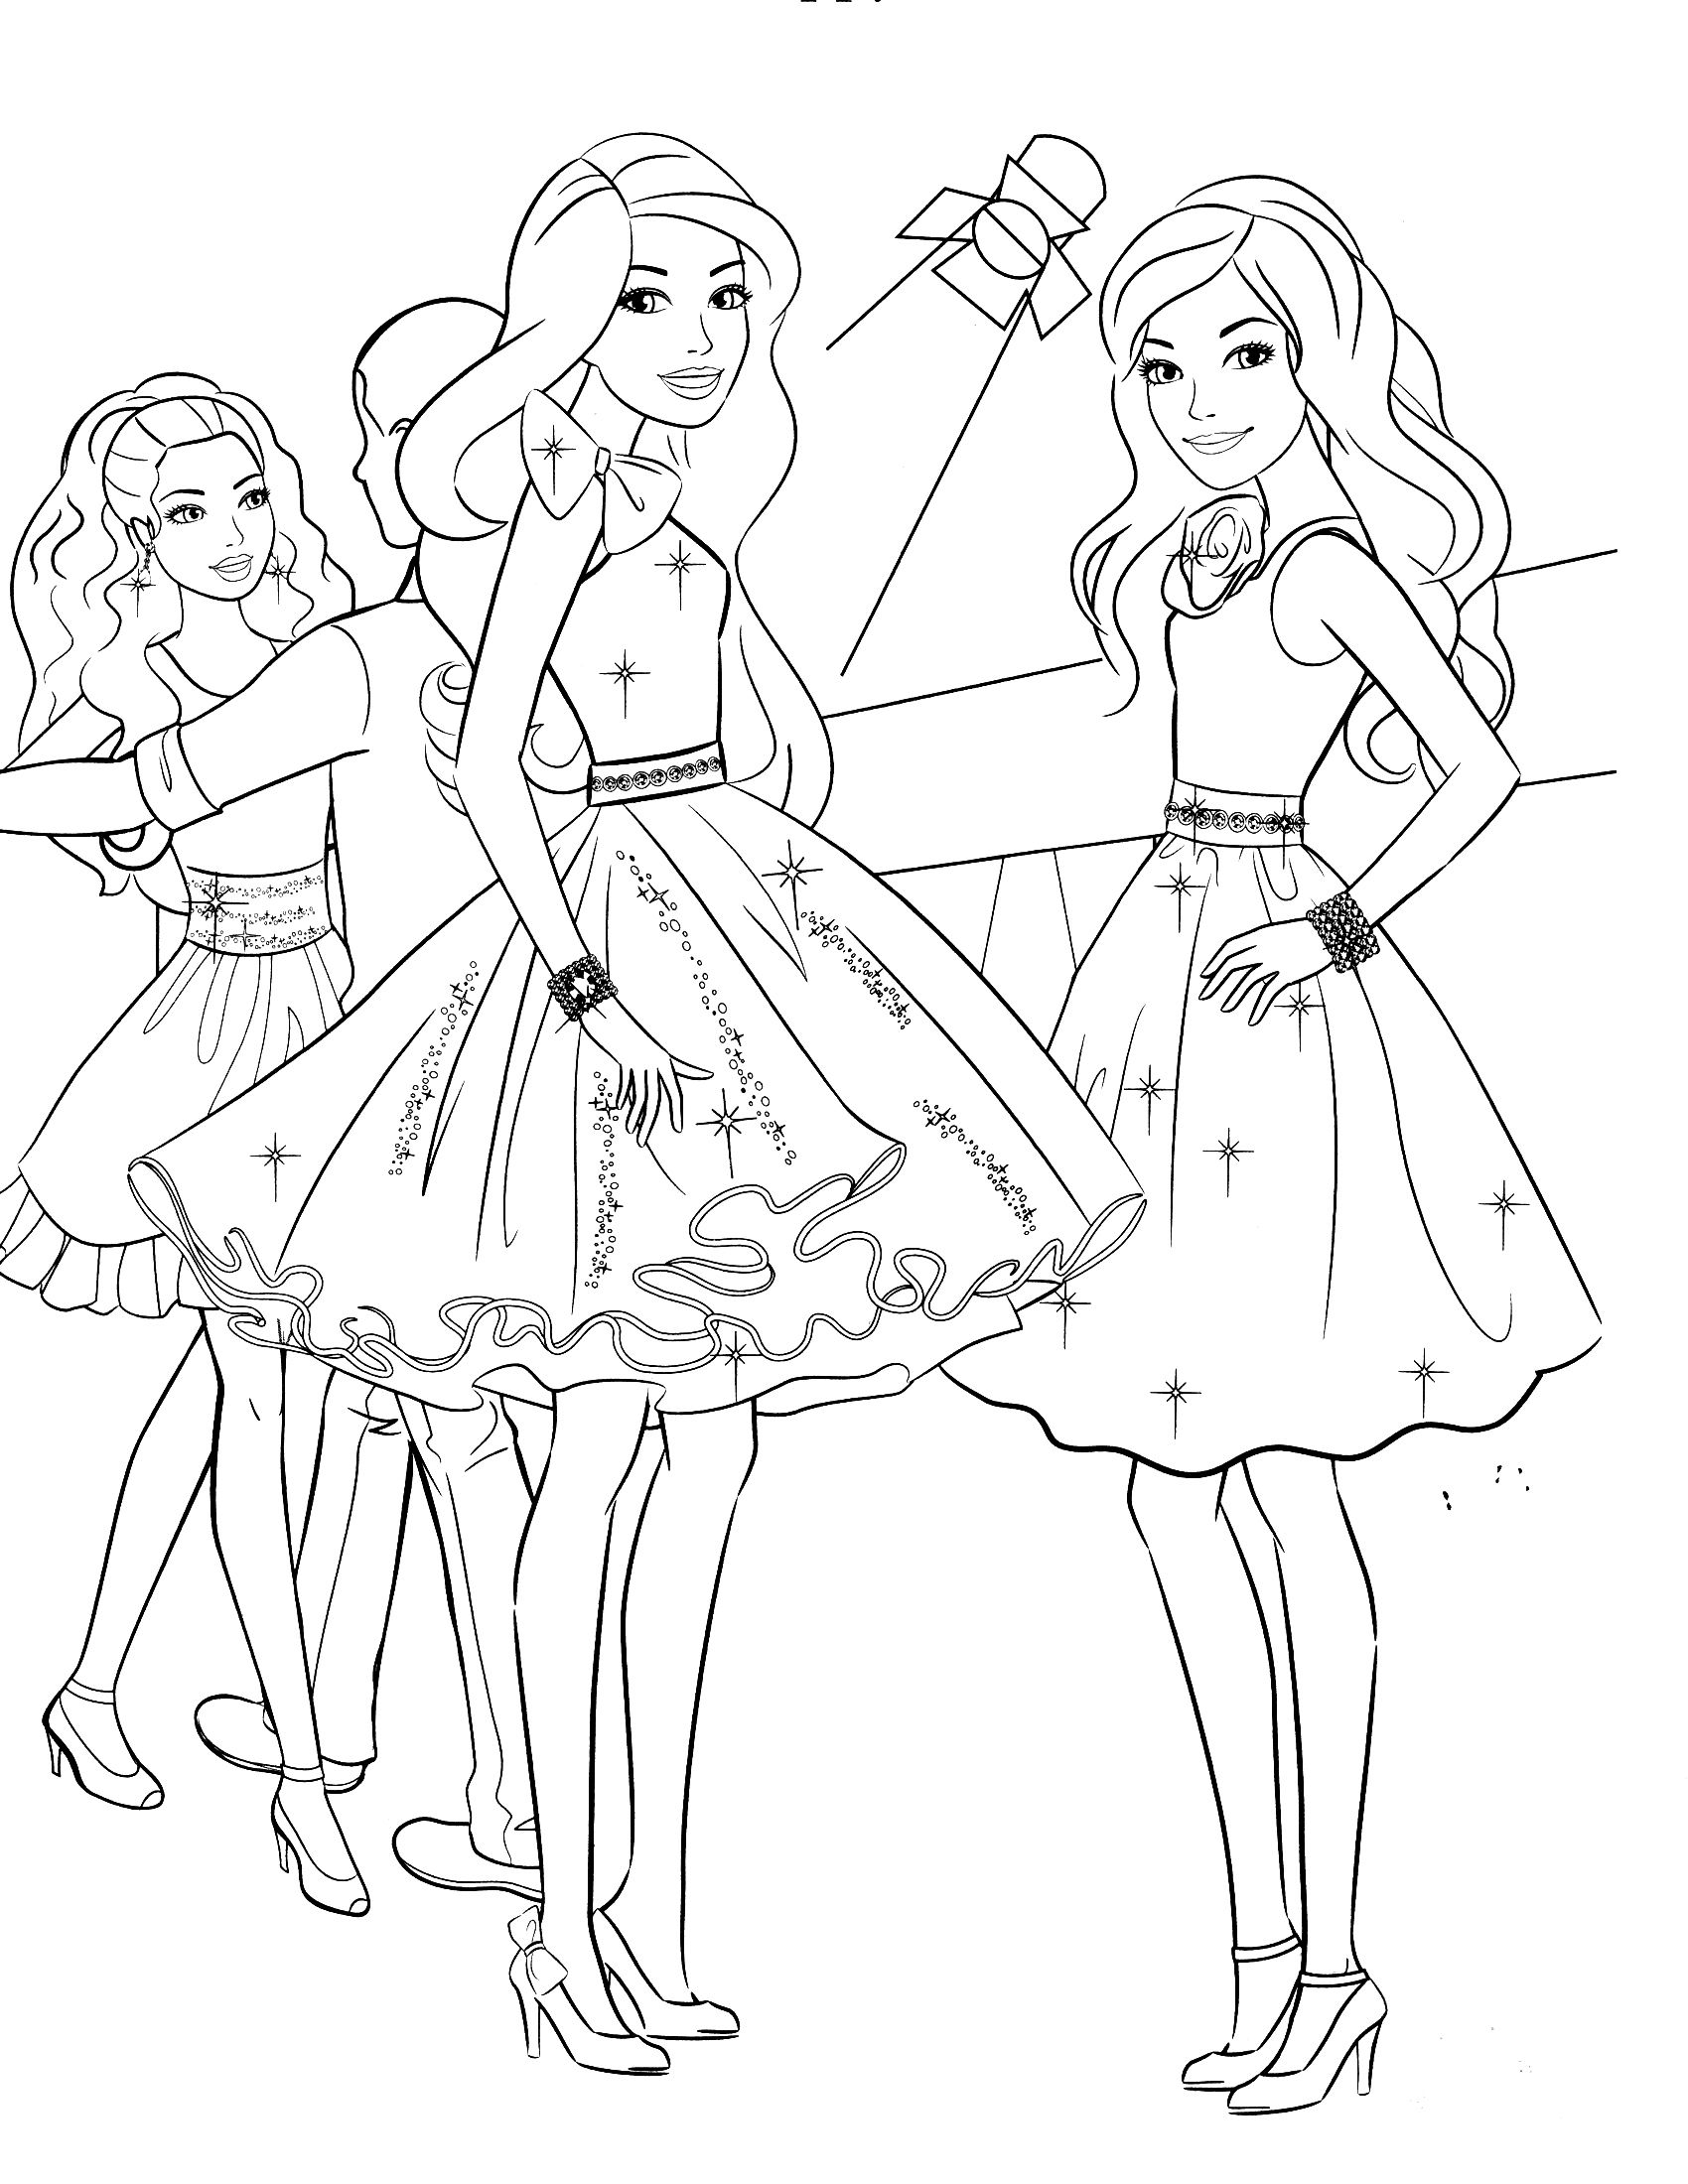 Barbie Coloring Pages Princess Charm School  Gallery 11b - To print for your project